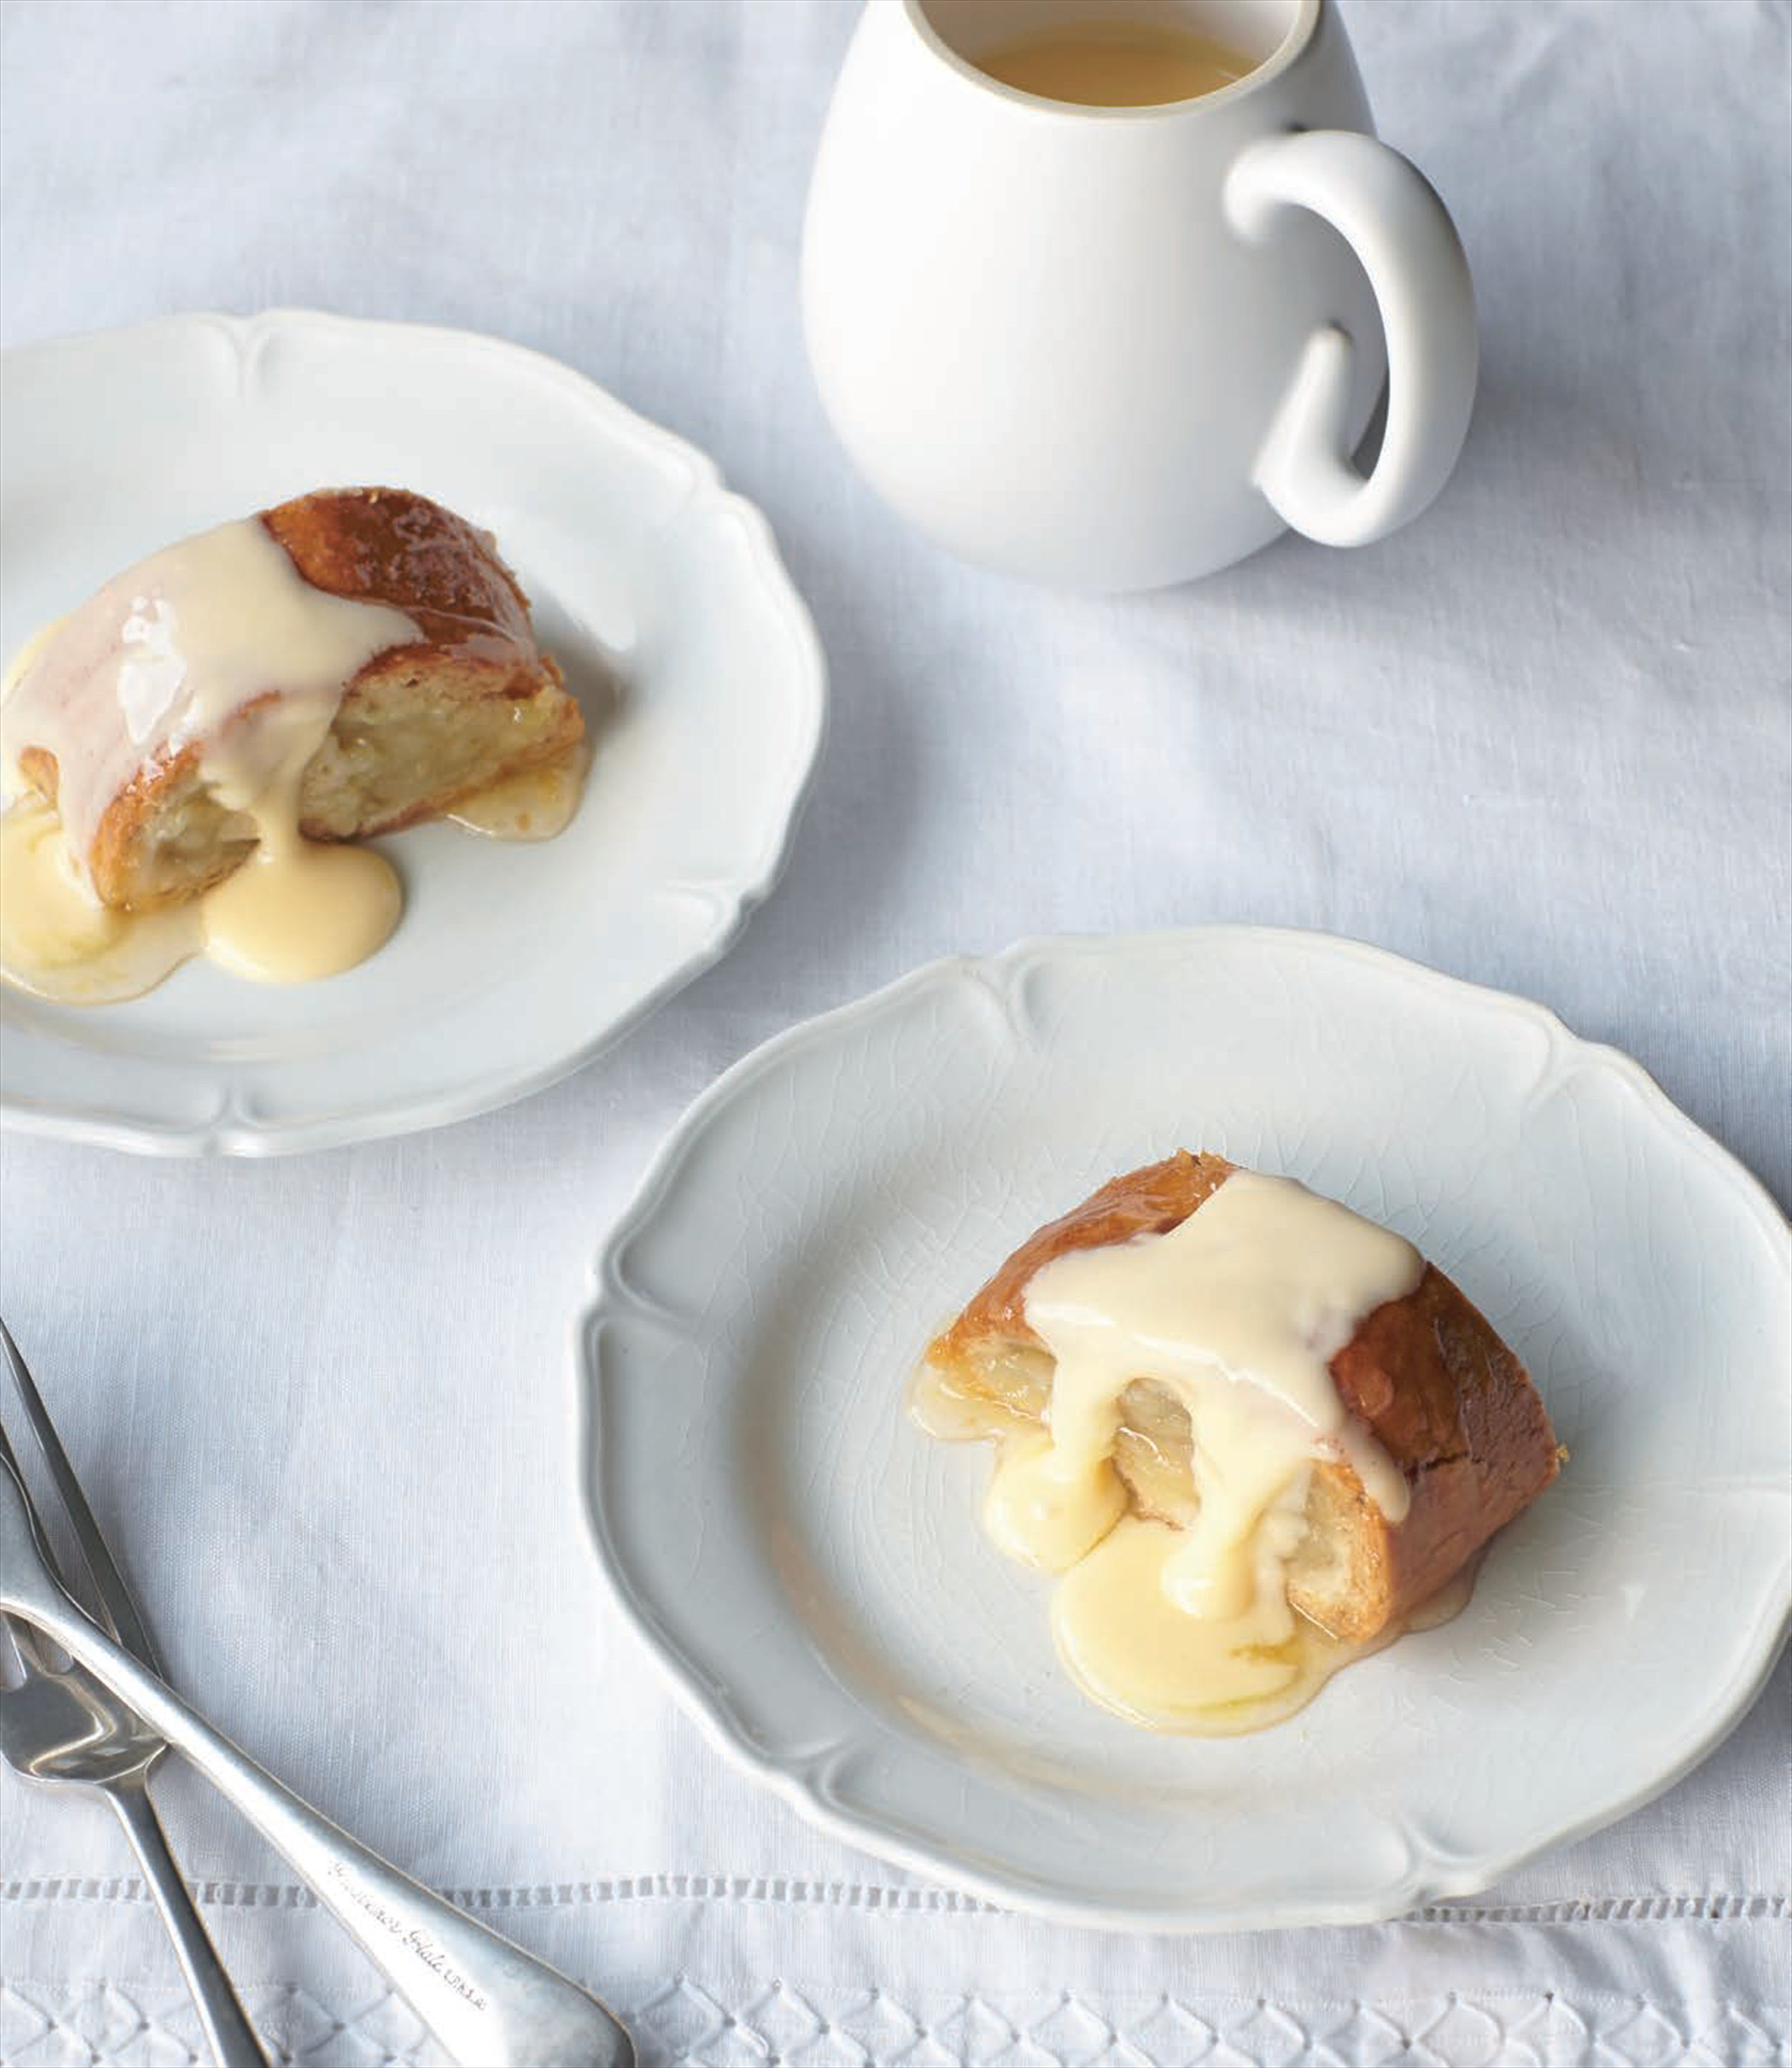 Baked apple roly-poly